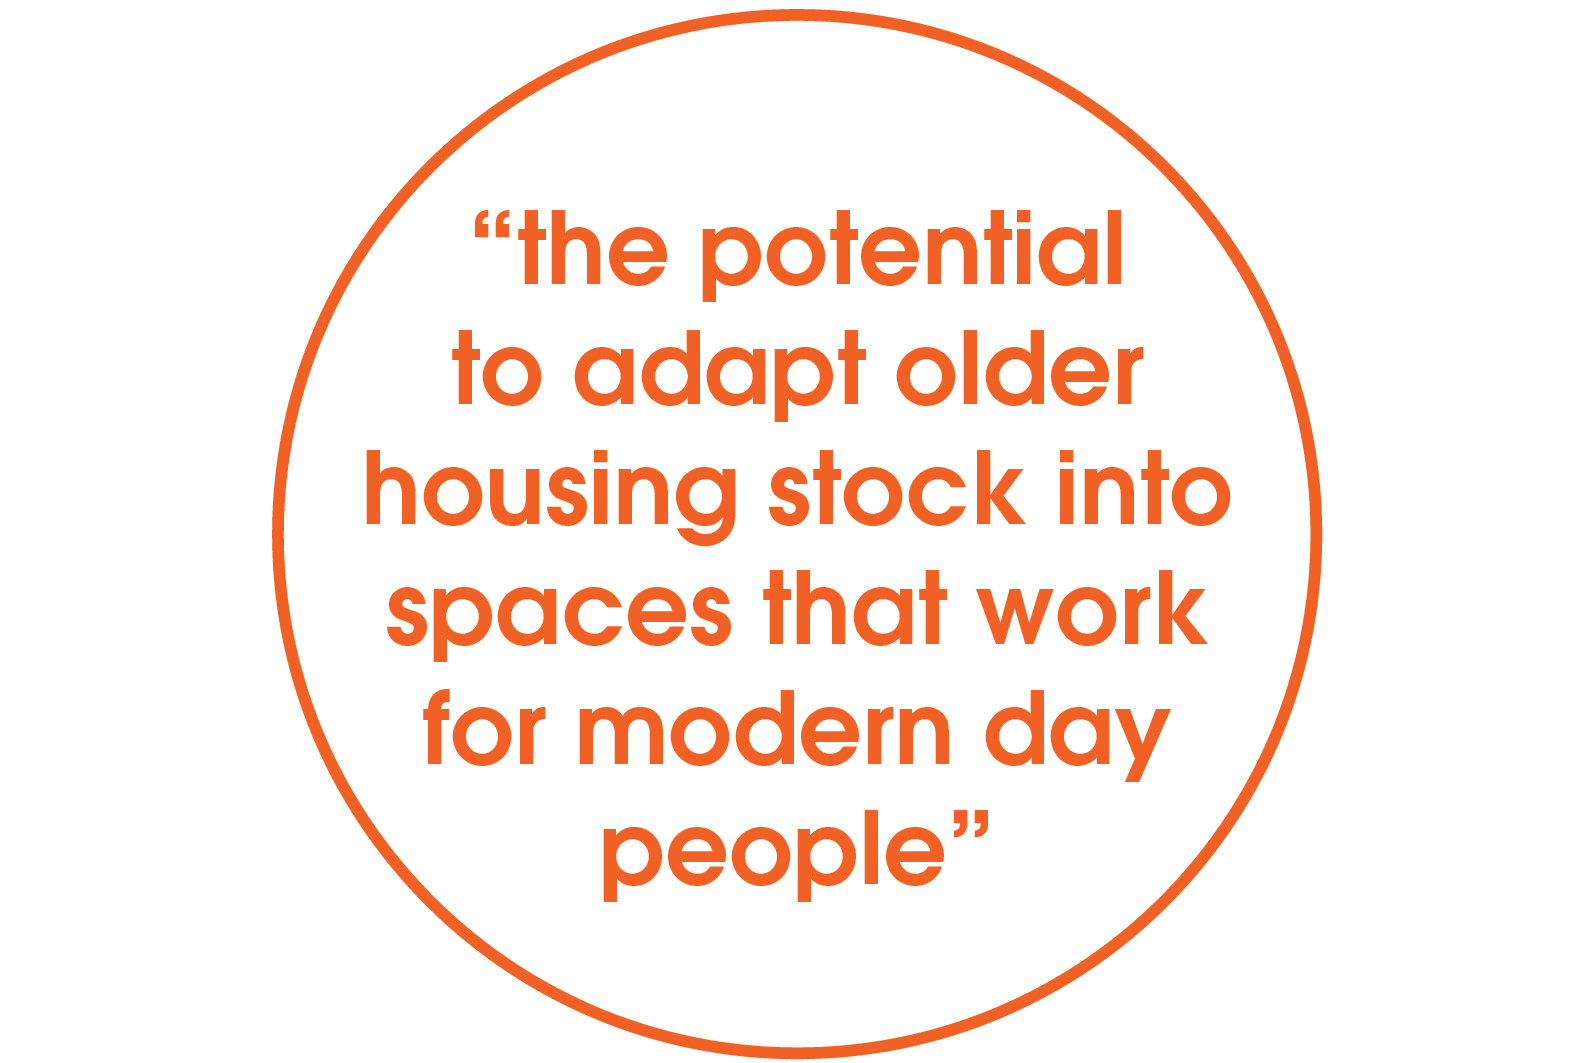 adapting old housing stock for modern day people quote